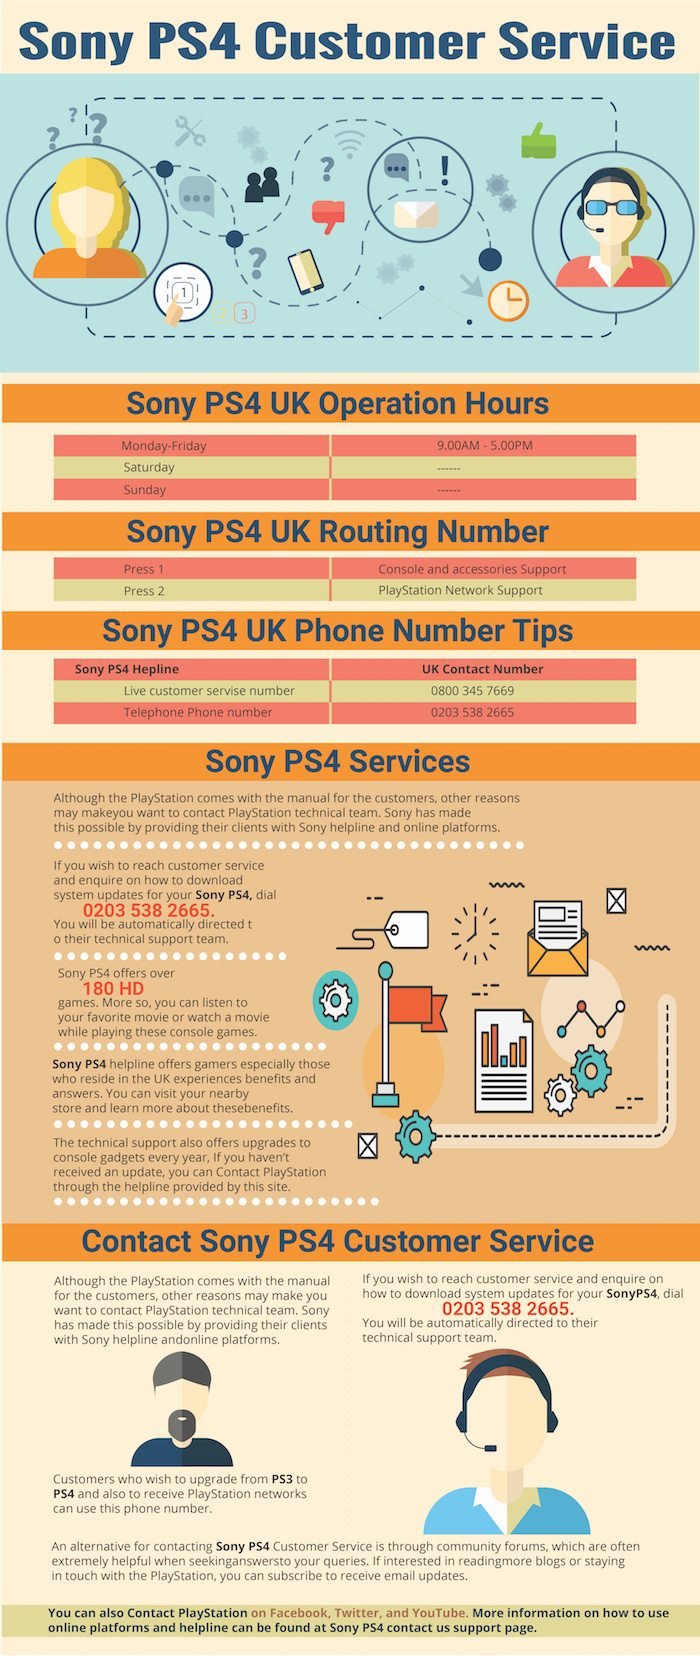 PlayStation Contact Numbers